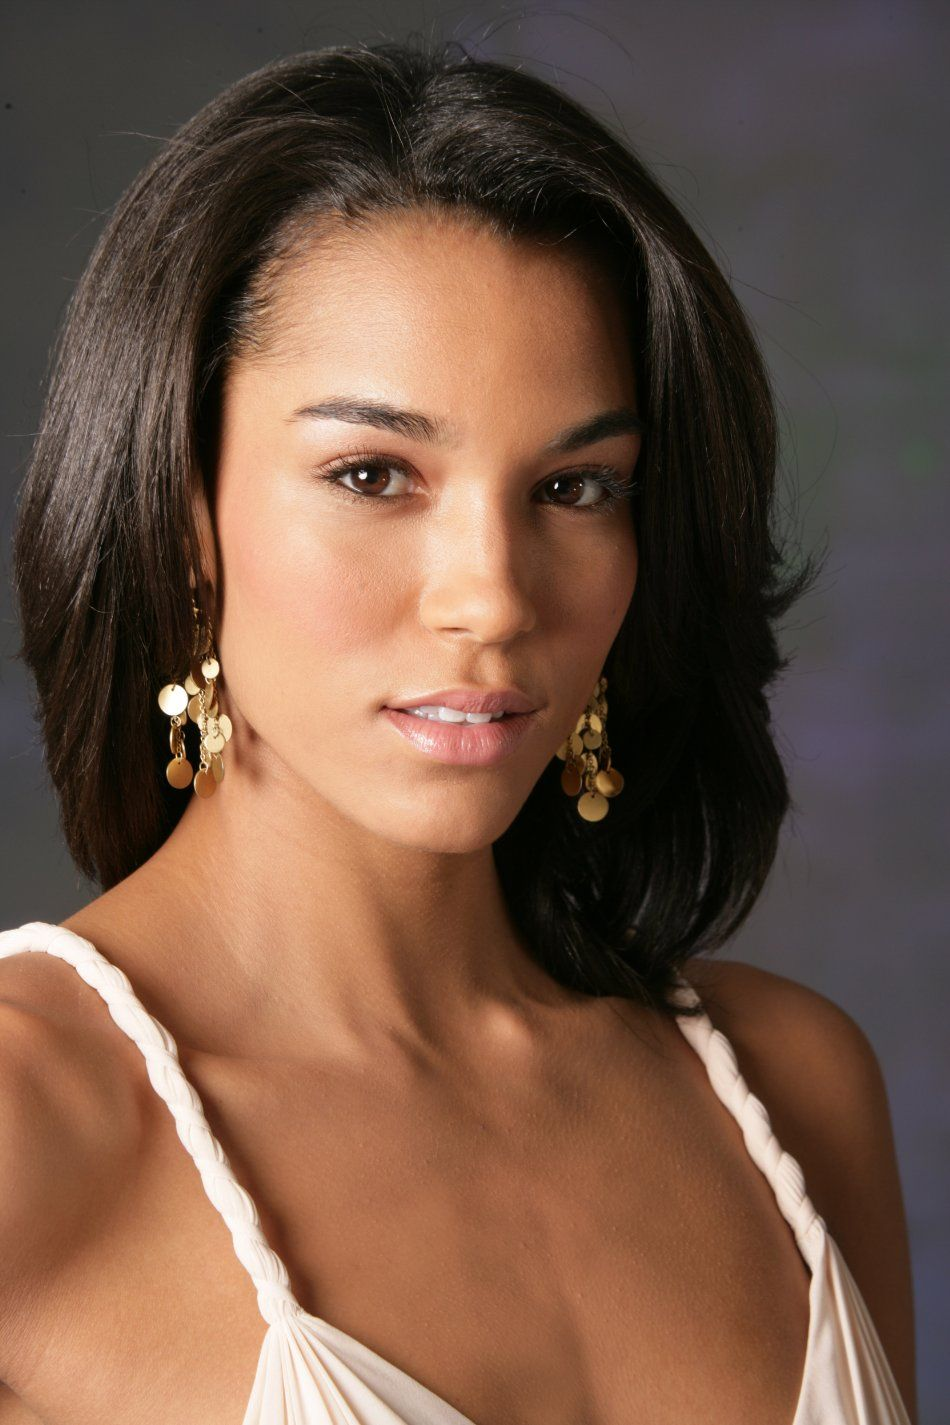 brooklyn sudano hot